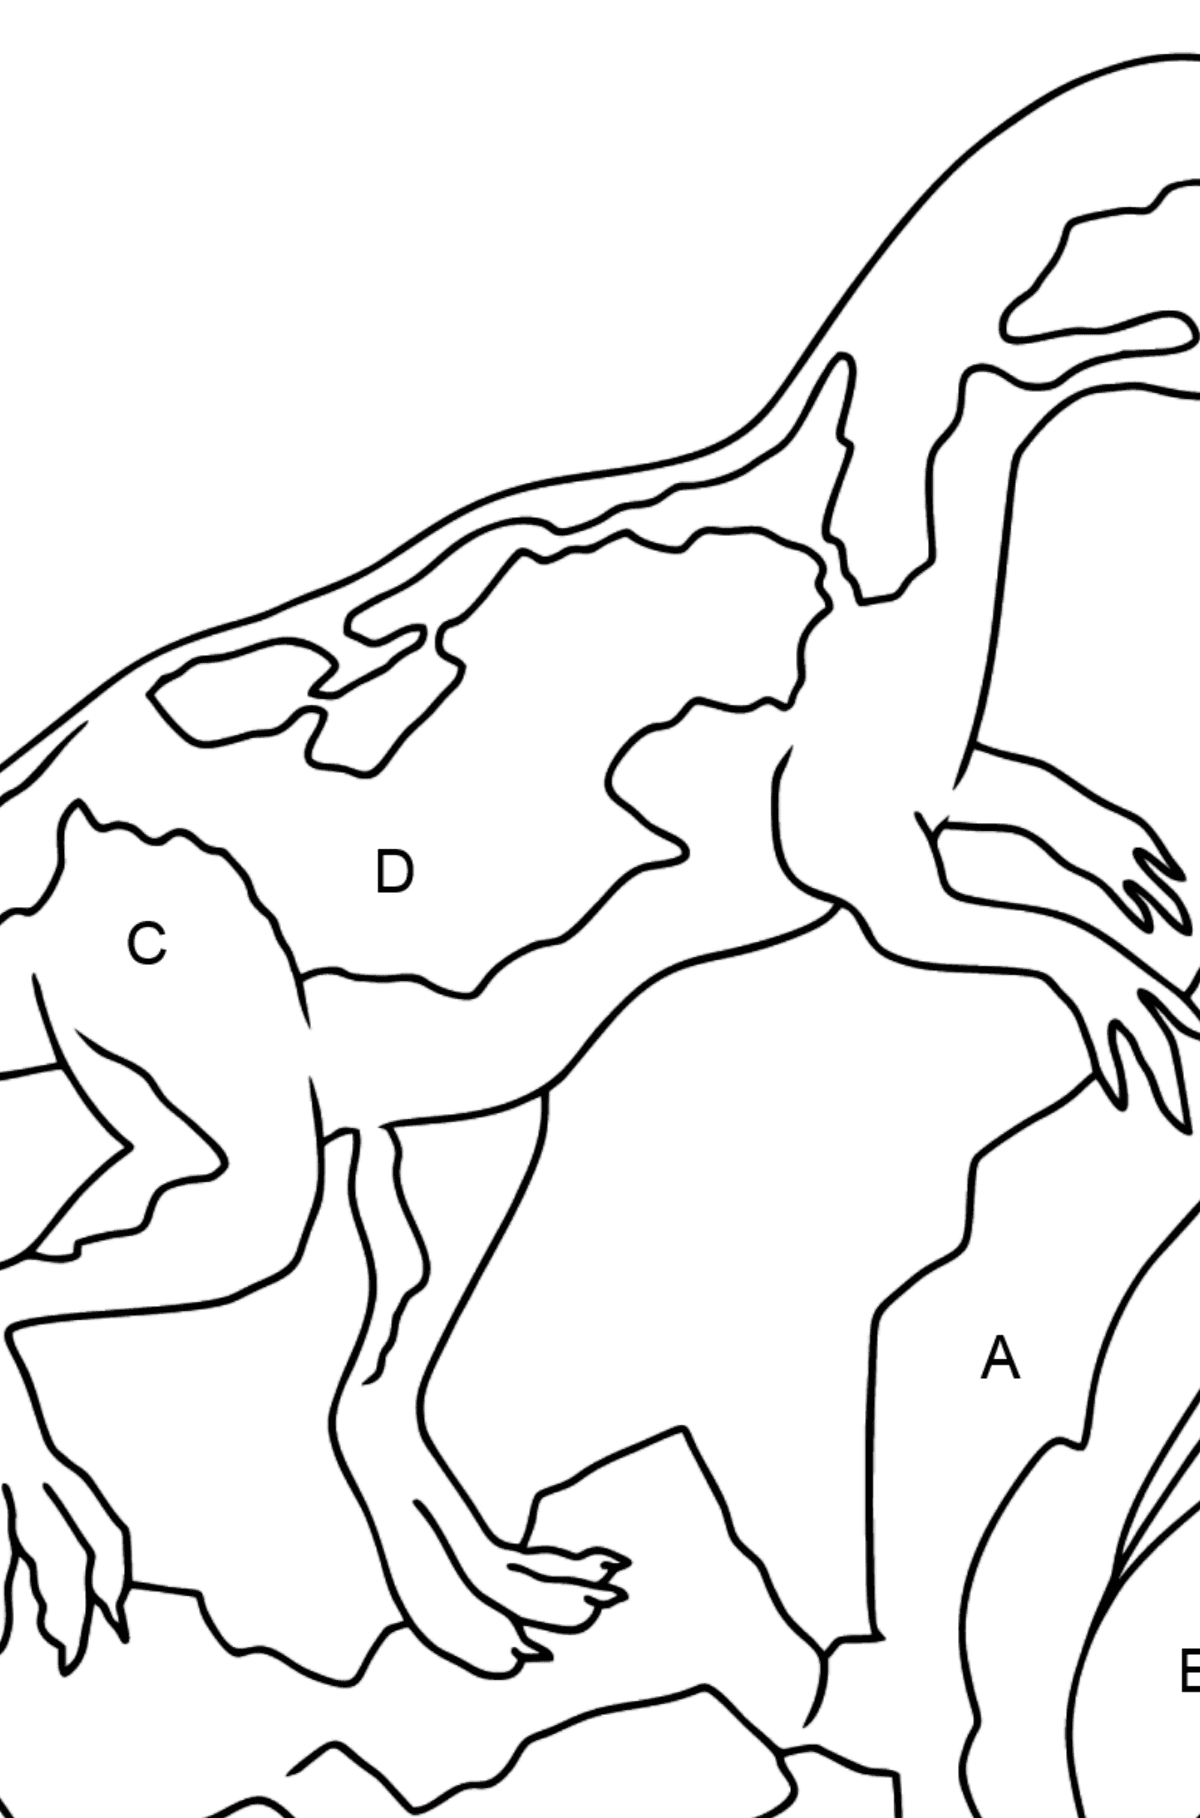 Coloring Page - A Dinosaur is Looking for Food - Coloring by Letters for Kids